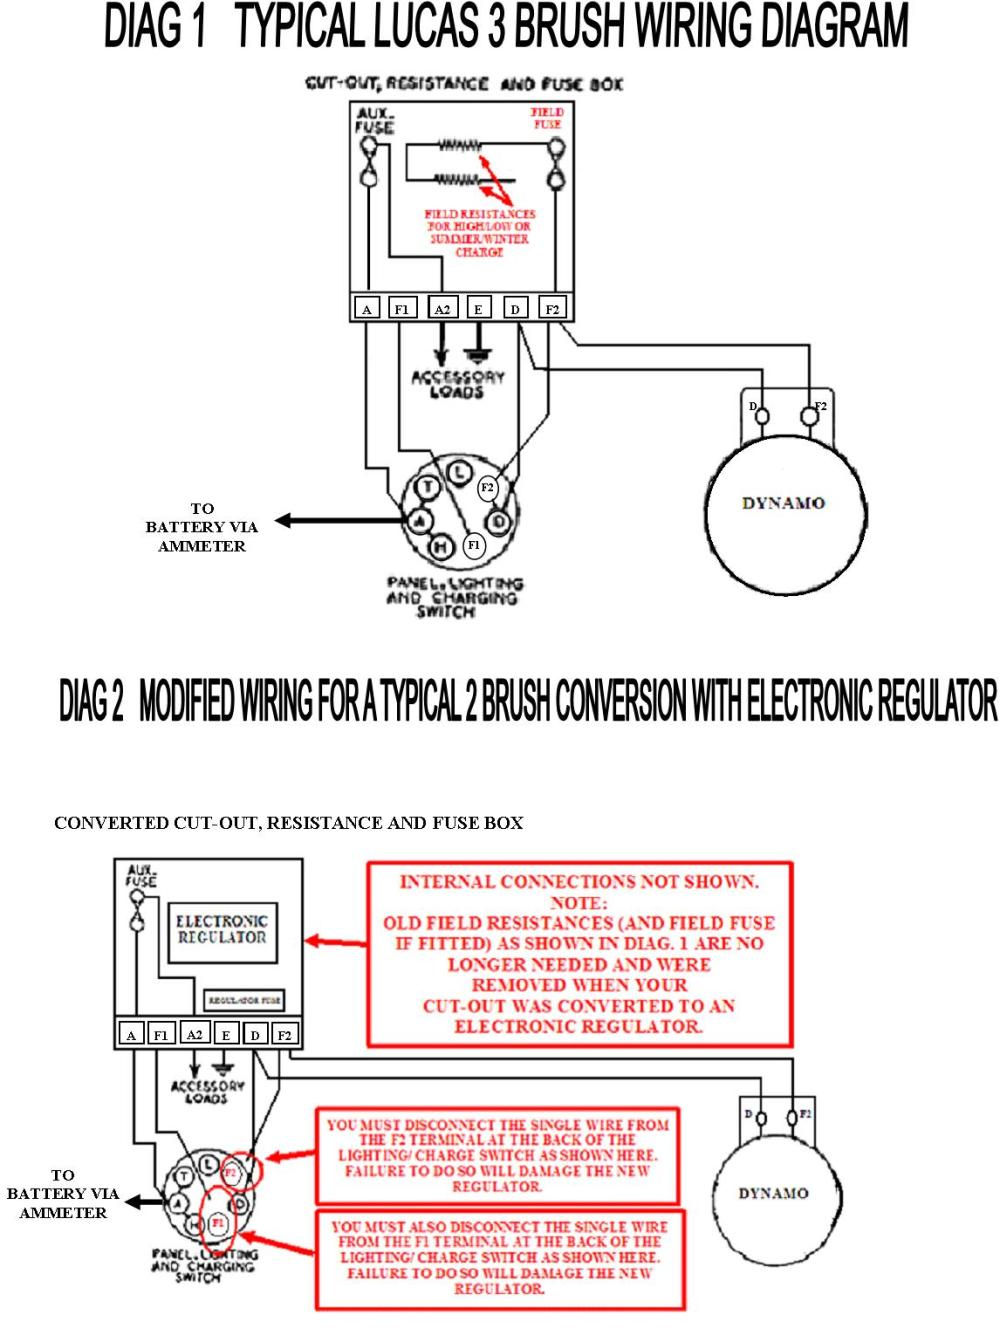 medium resolution of use the relevant diagram along with the supplied written instructions to check your wiring and connections during and after installation and